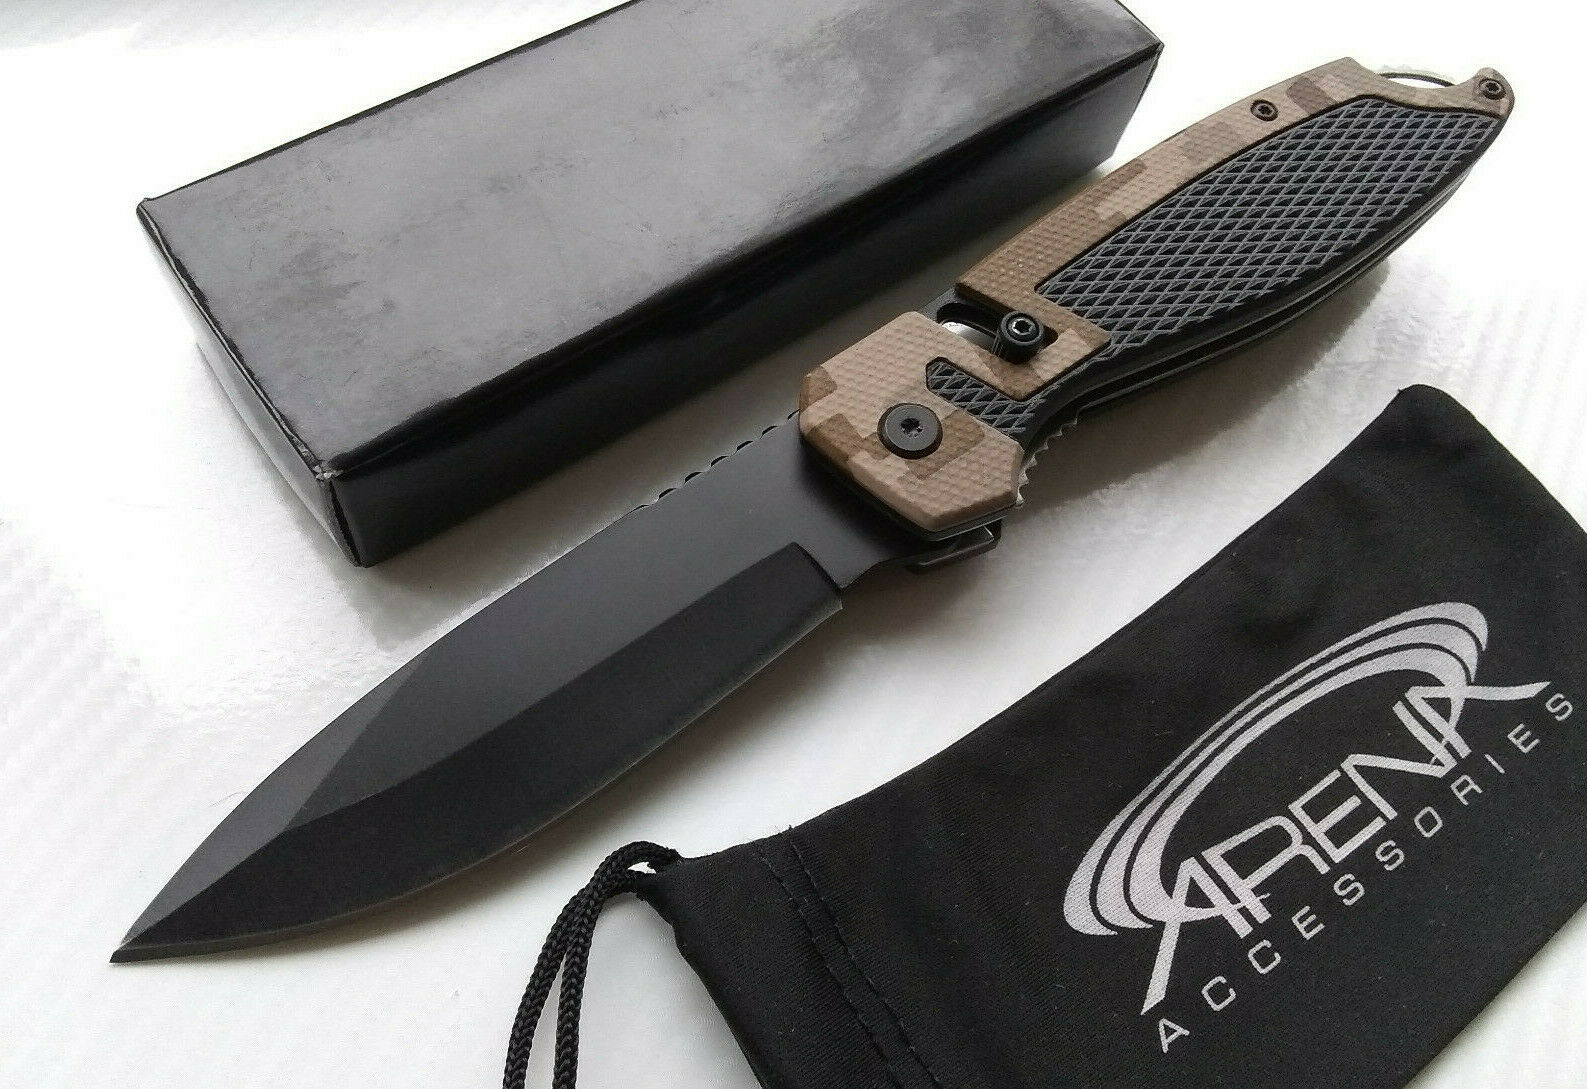 Wartech Lightweight Unique Slide Spring Assisted Pocket Knife Folder EDC Tan Digital Camo